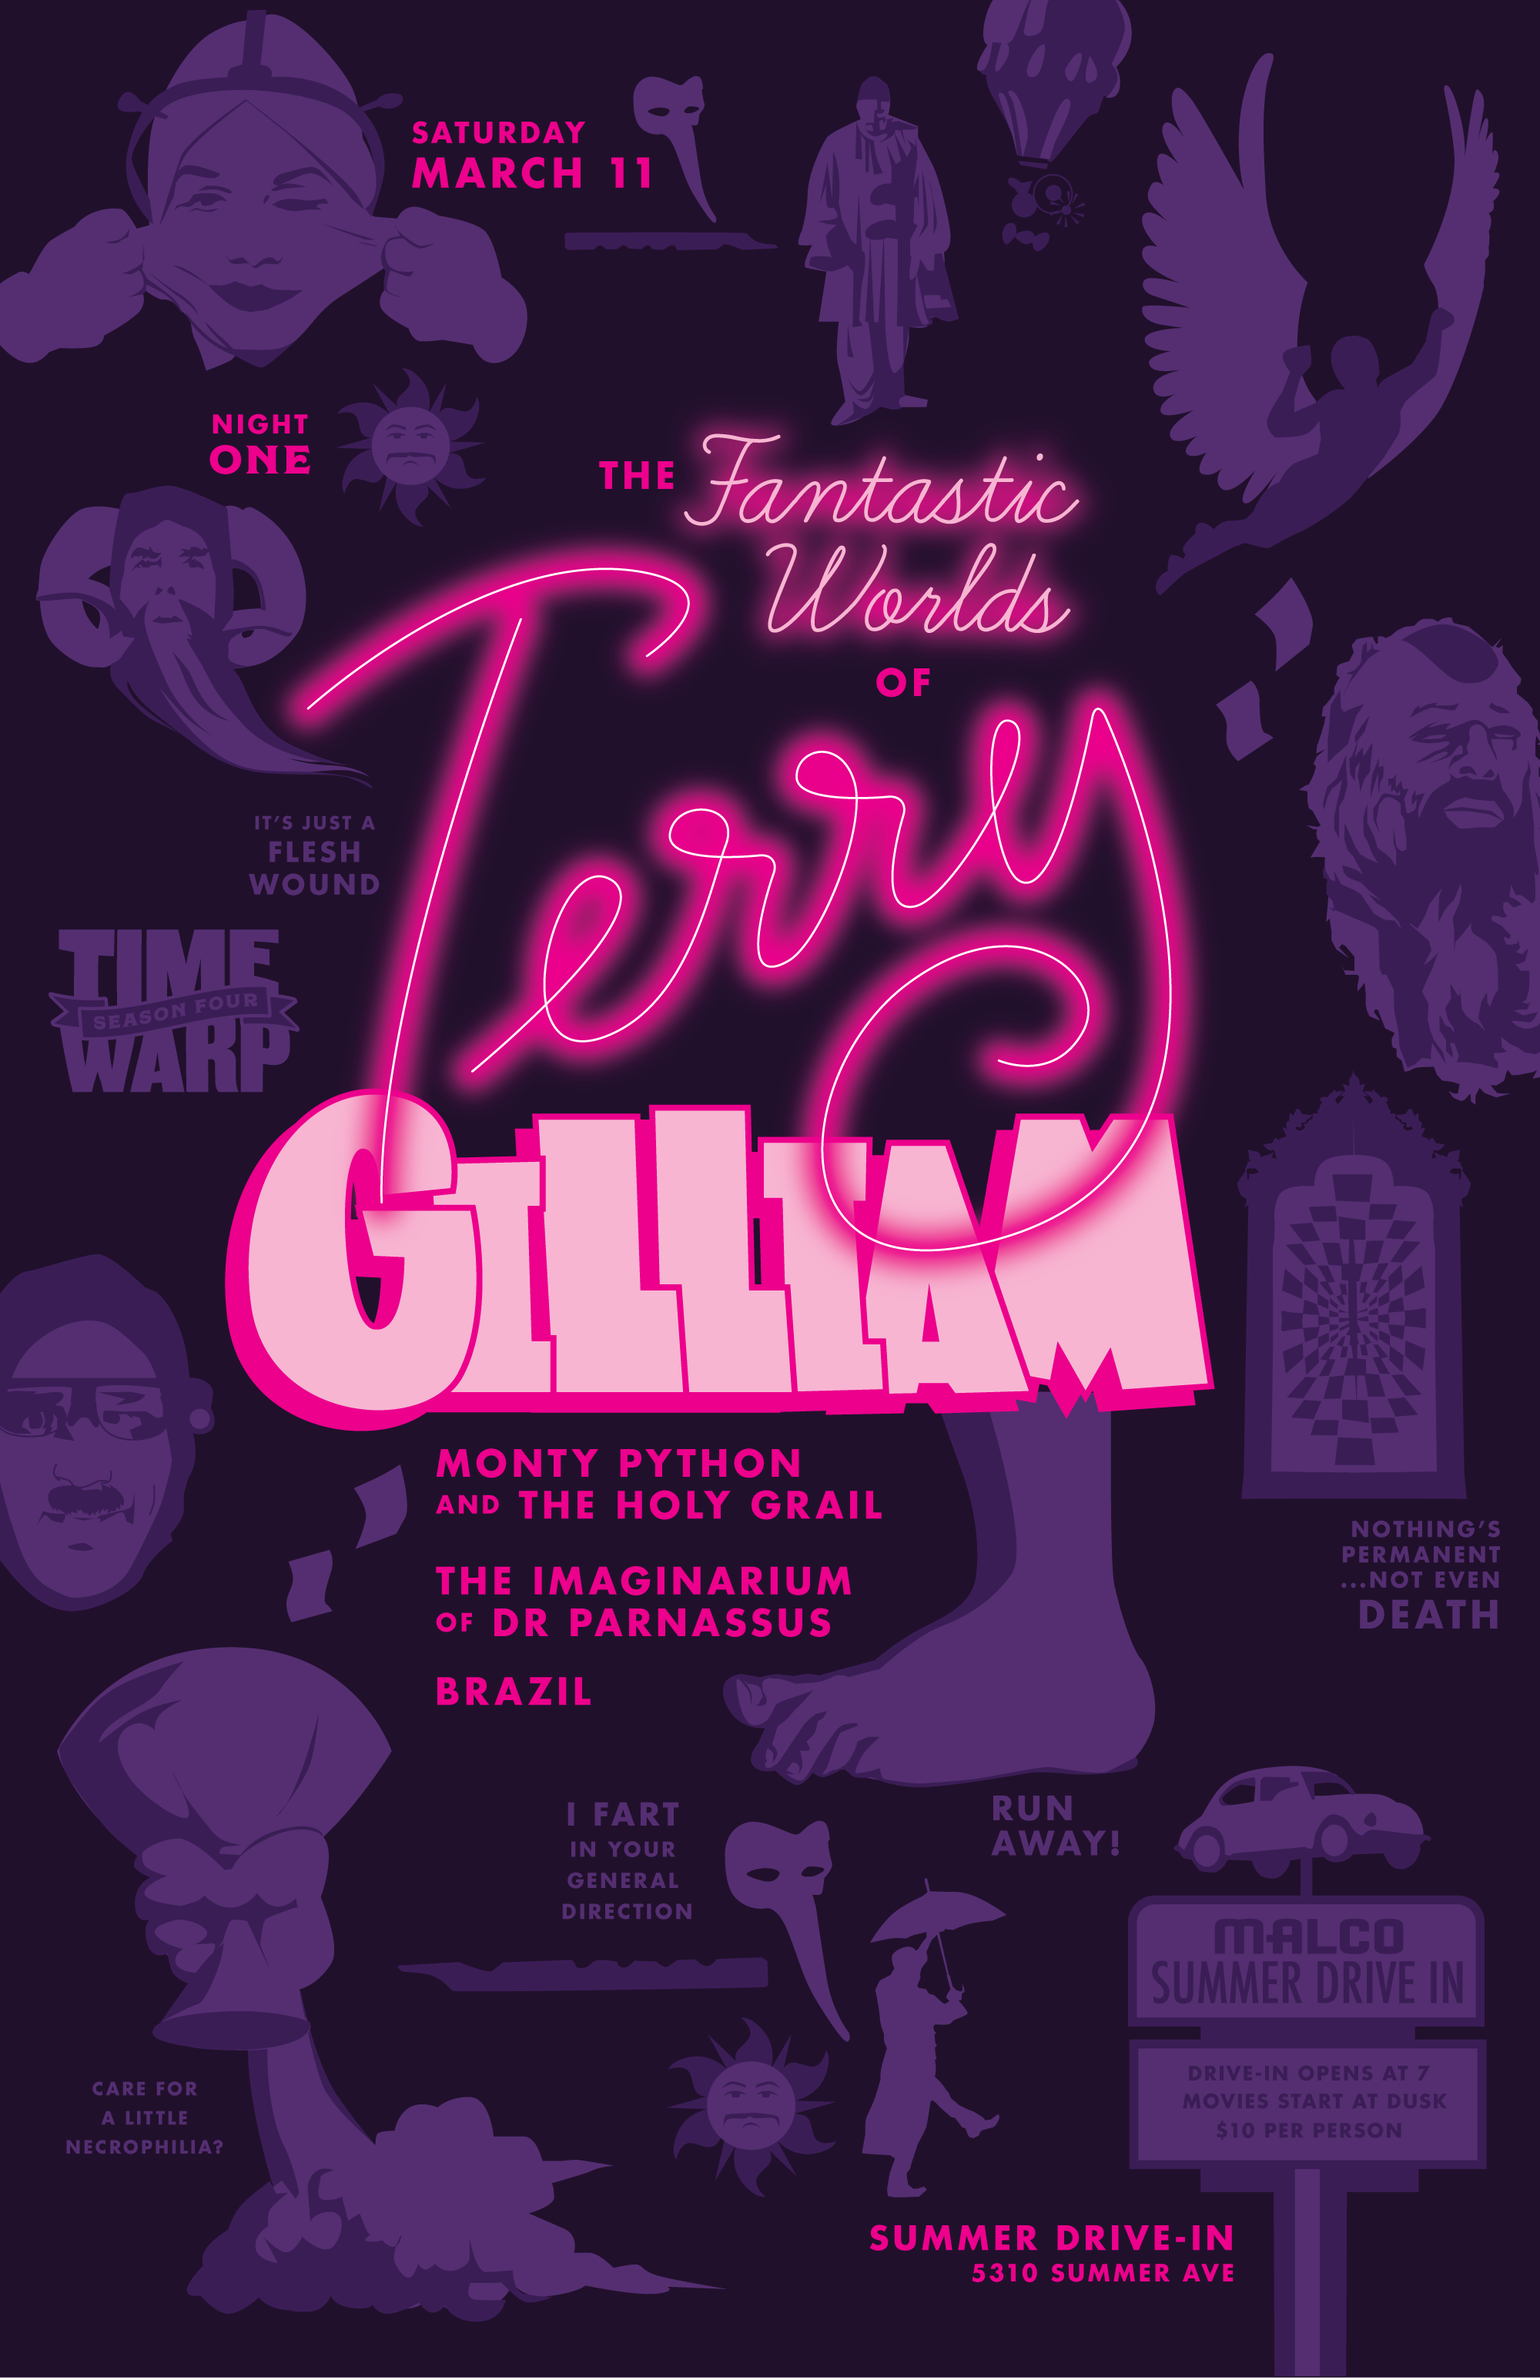 Time Warp Season 4: Terry Gilliam